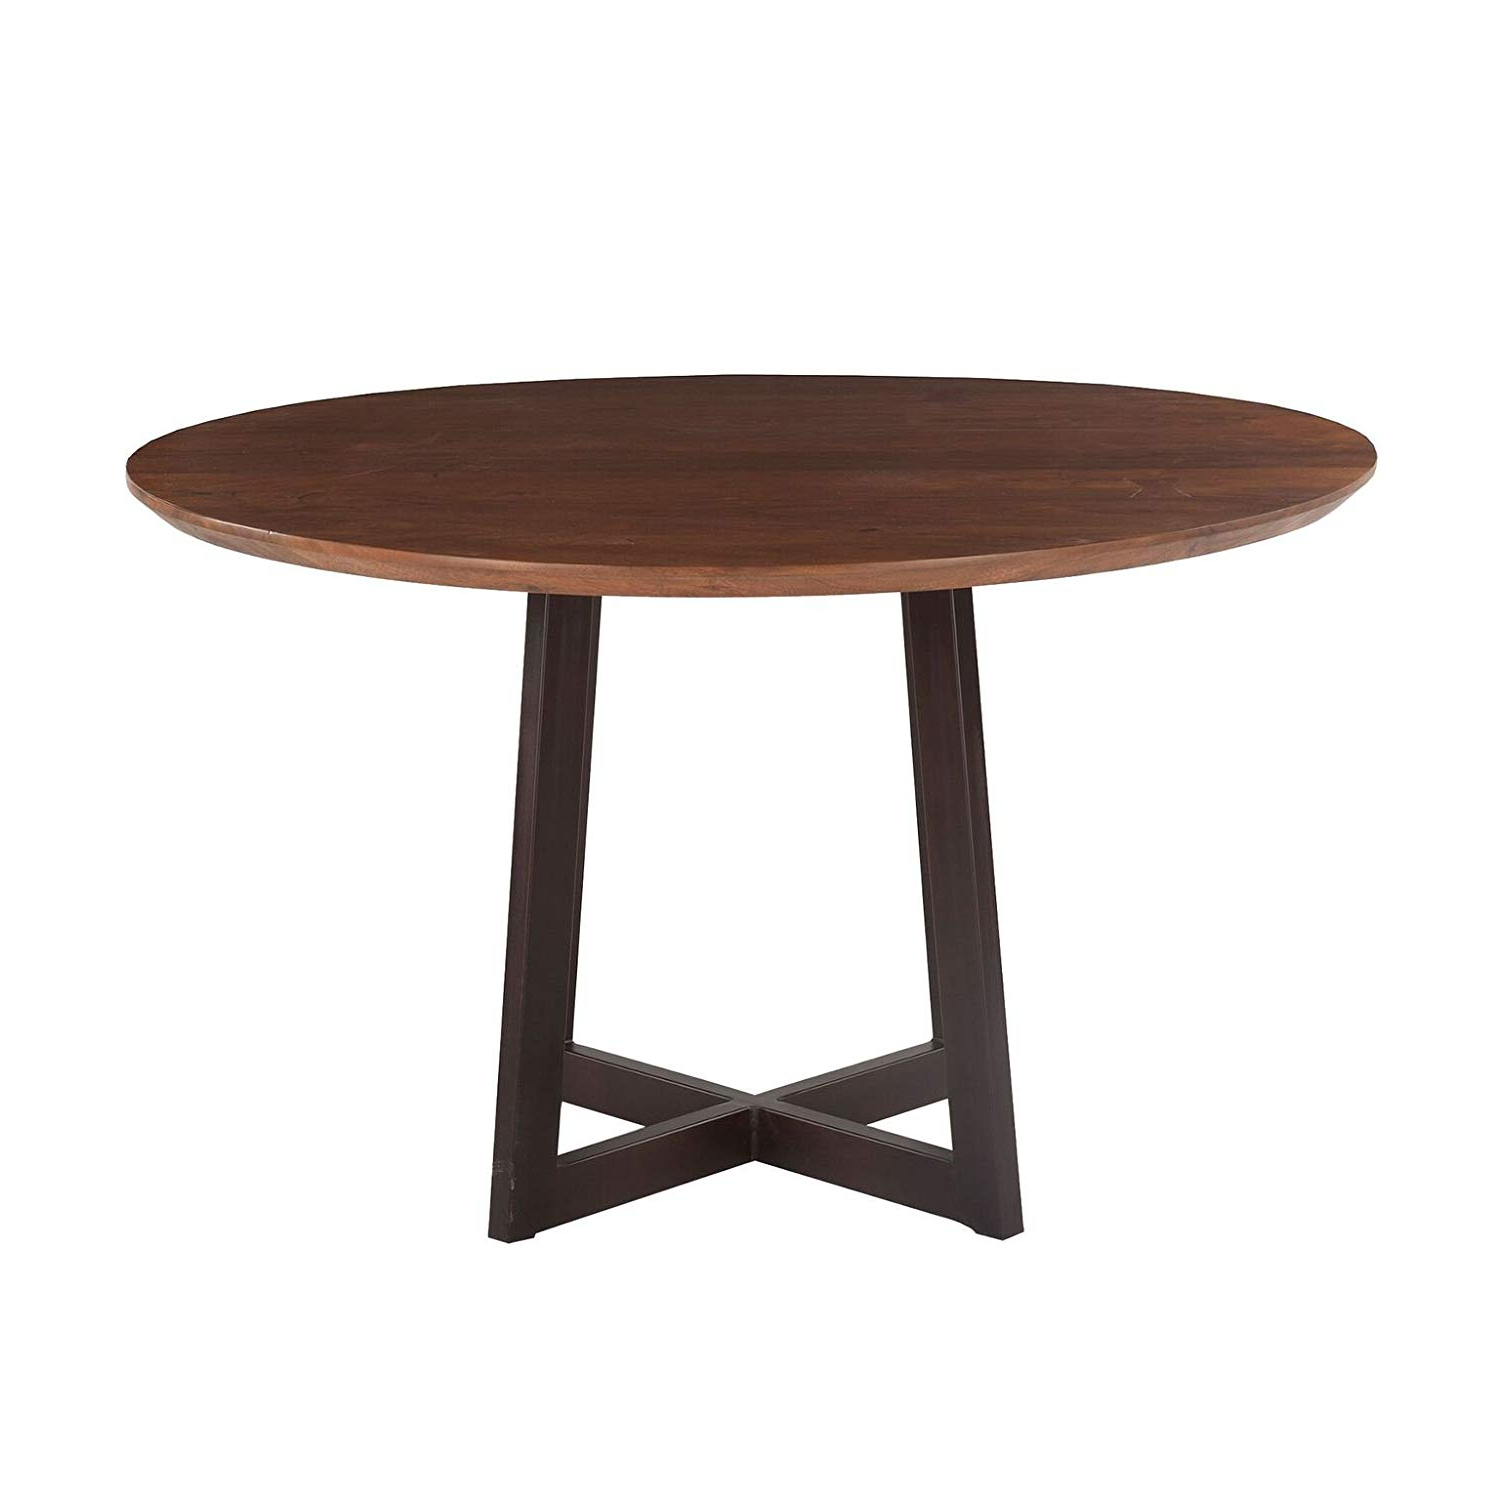 Acacia Dining Tables With Black X Legs In 2020 Amazon – World Interiors Acacia Wood And Iron Round (View 11 of 25)